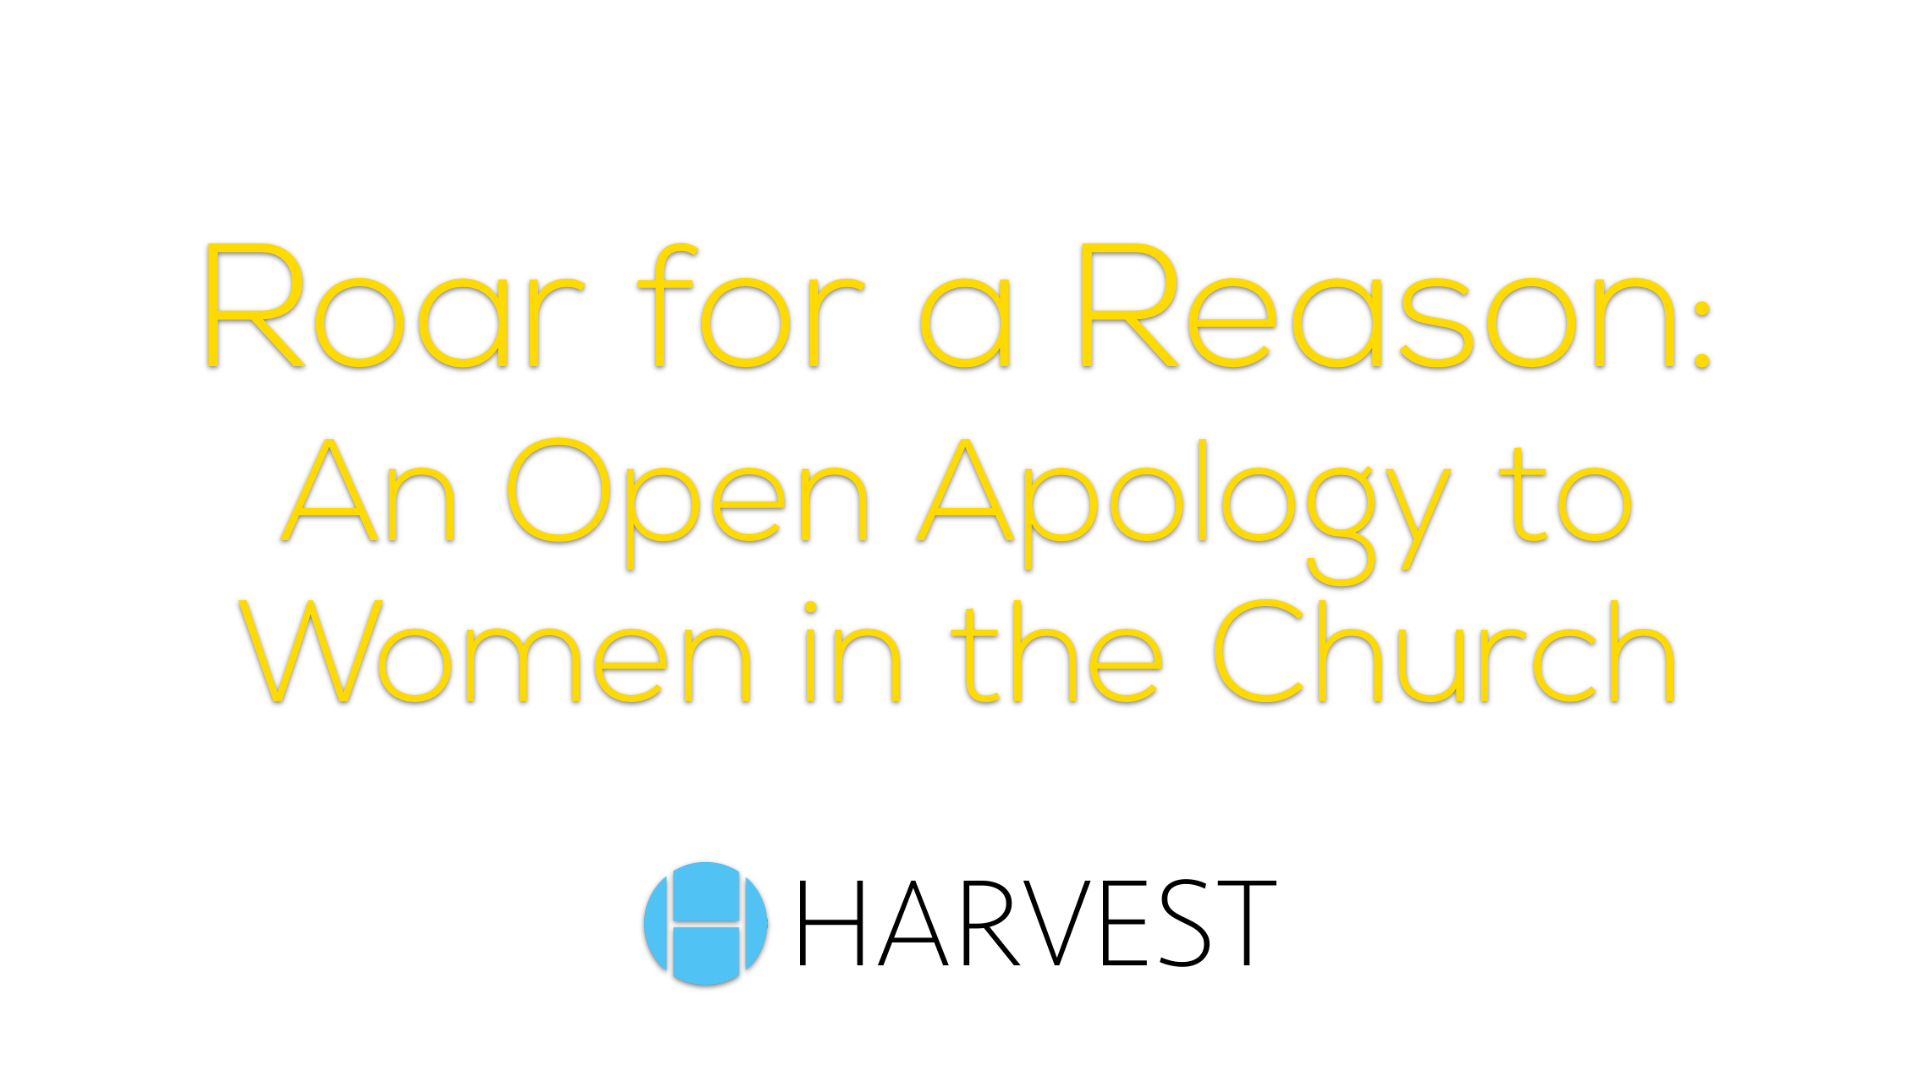 Roar for a Reason: An Open Apology to Women in the Church